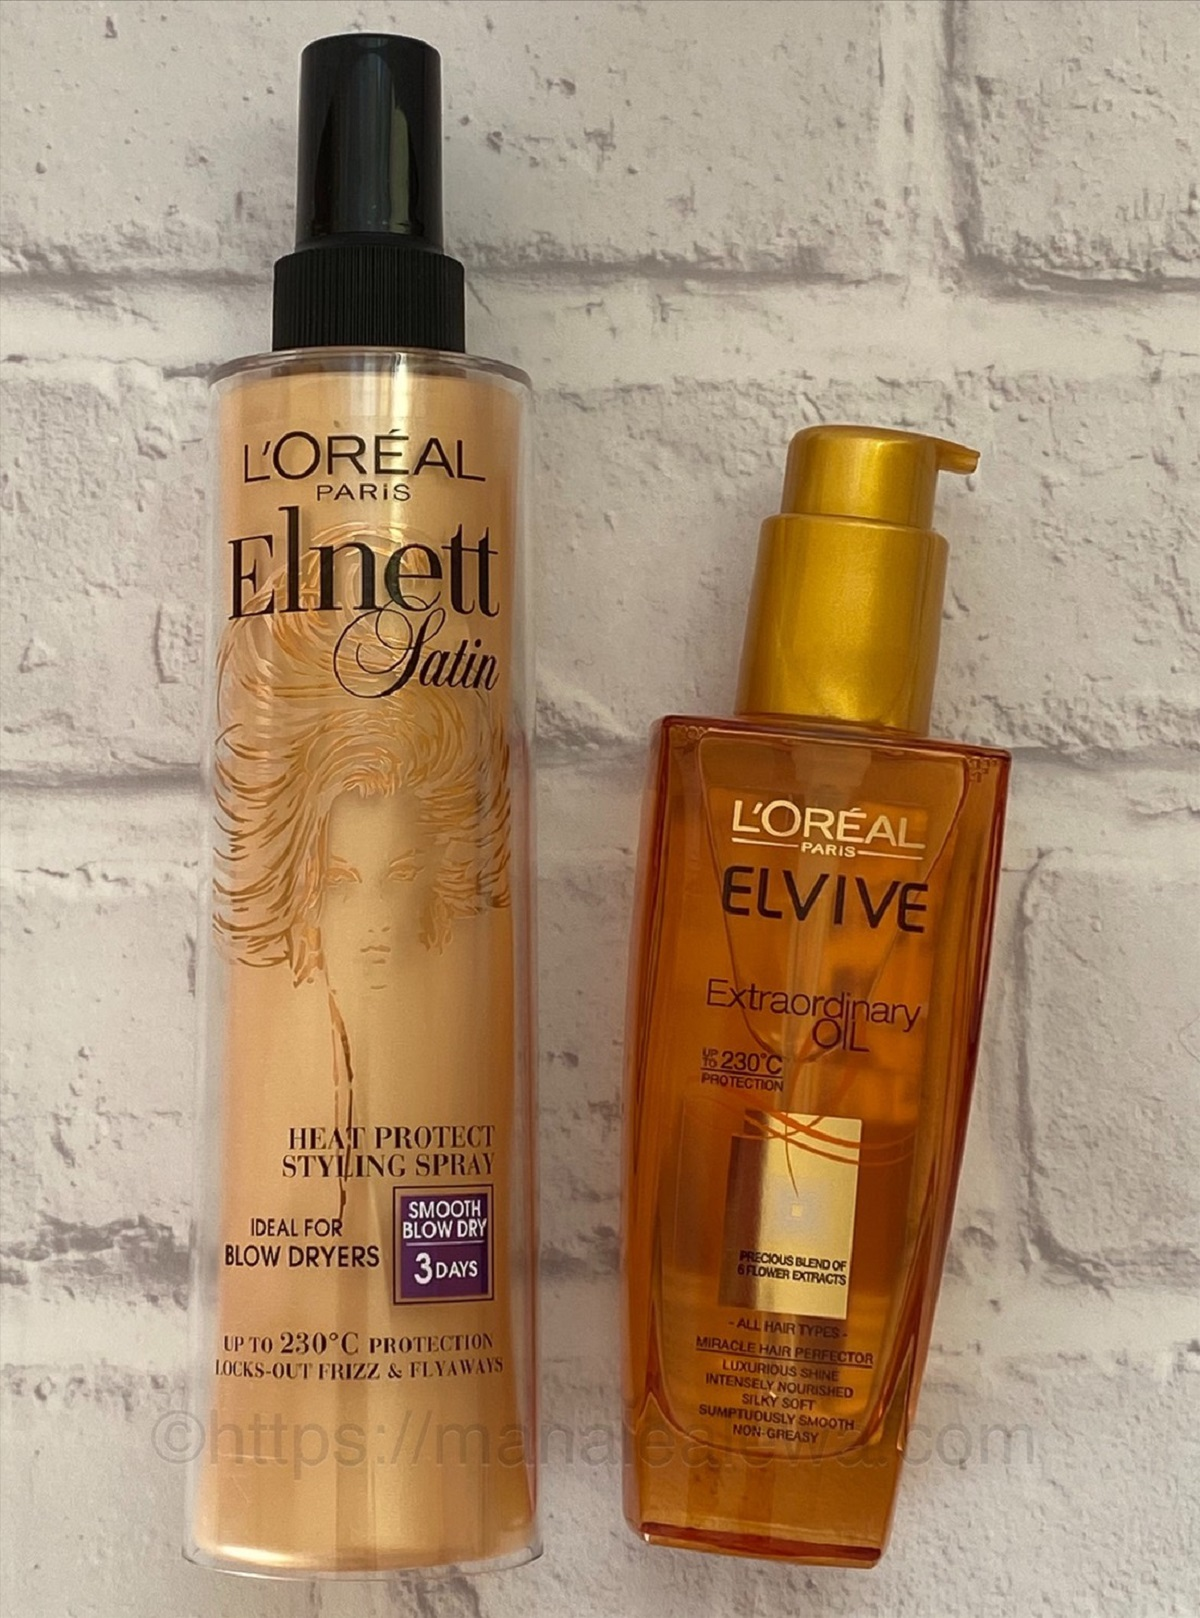 lookfantastic-loreal-paris-elvive-elnett-product